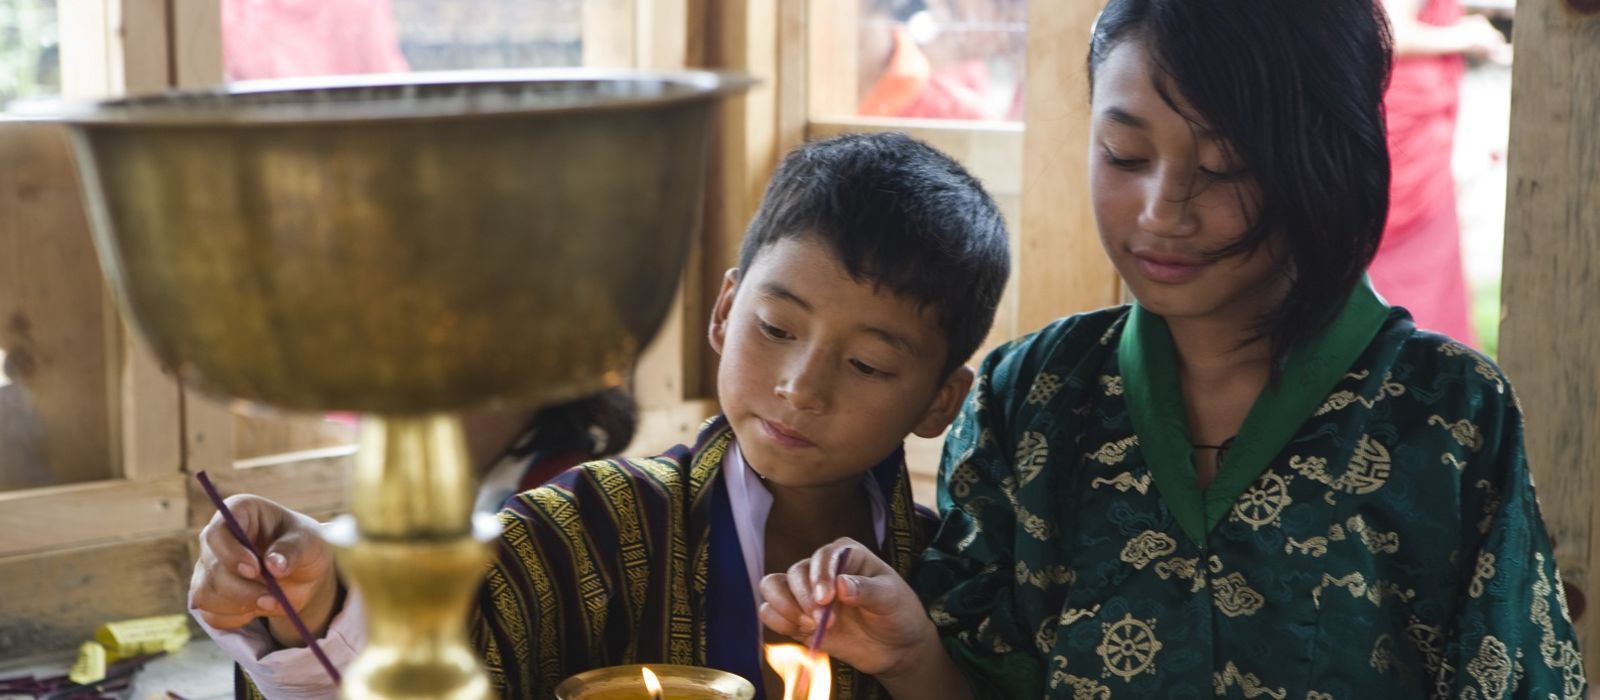 Amankora Exclusive: Luxurious Bhutan Tour Trip 5